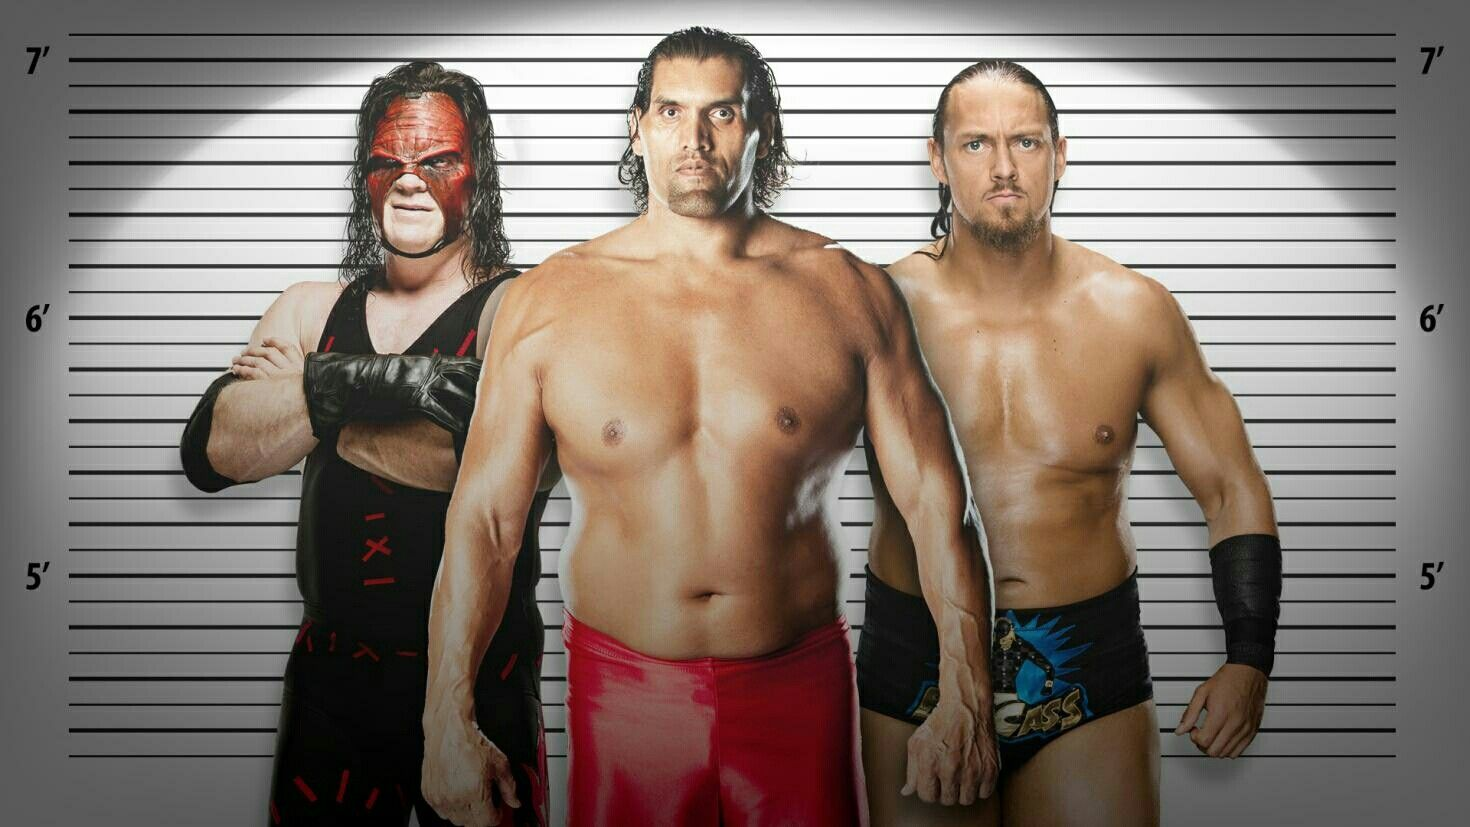 Andre The Giant And The Big Show And Big Cass And Kane And